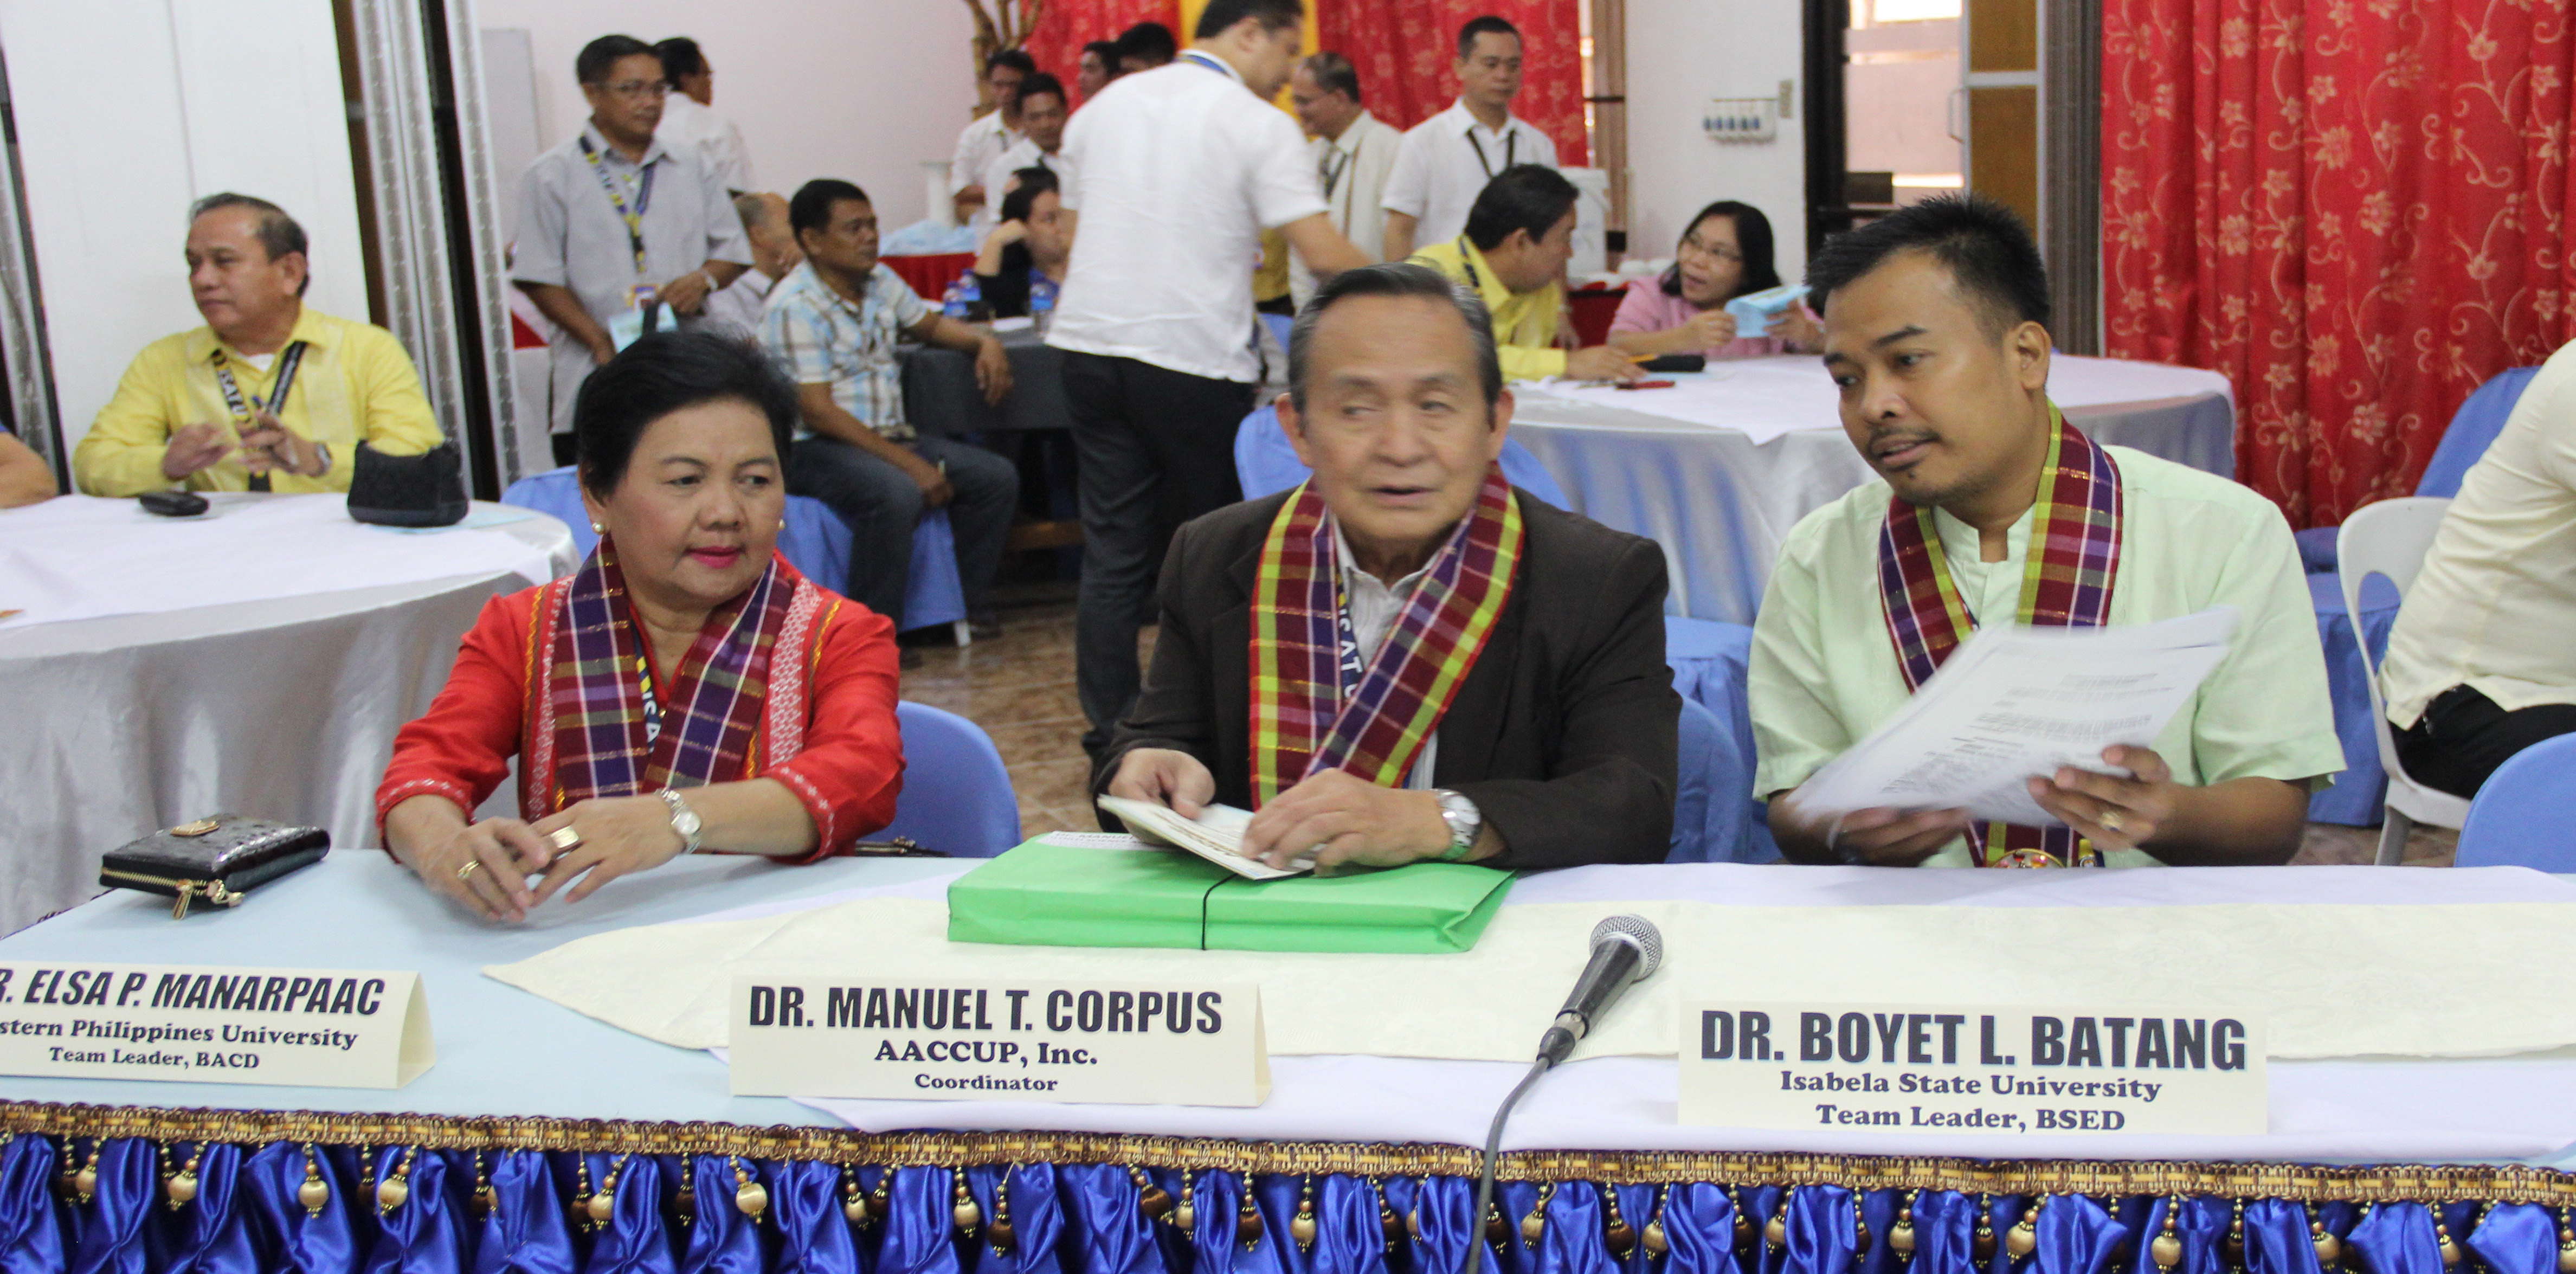 The team of accreditors for the survey visit. WPU President Dr. Elsa P. Manaarpaac, AACCUP, Inc. Executive Director D. Manuel T. Corpus and Dr. Boyet L. Batang of Isabela State University.